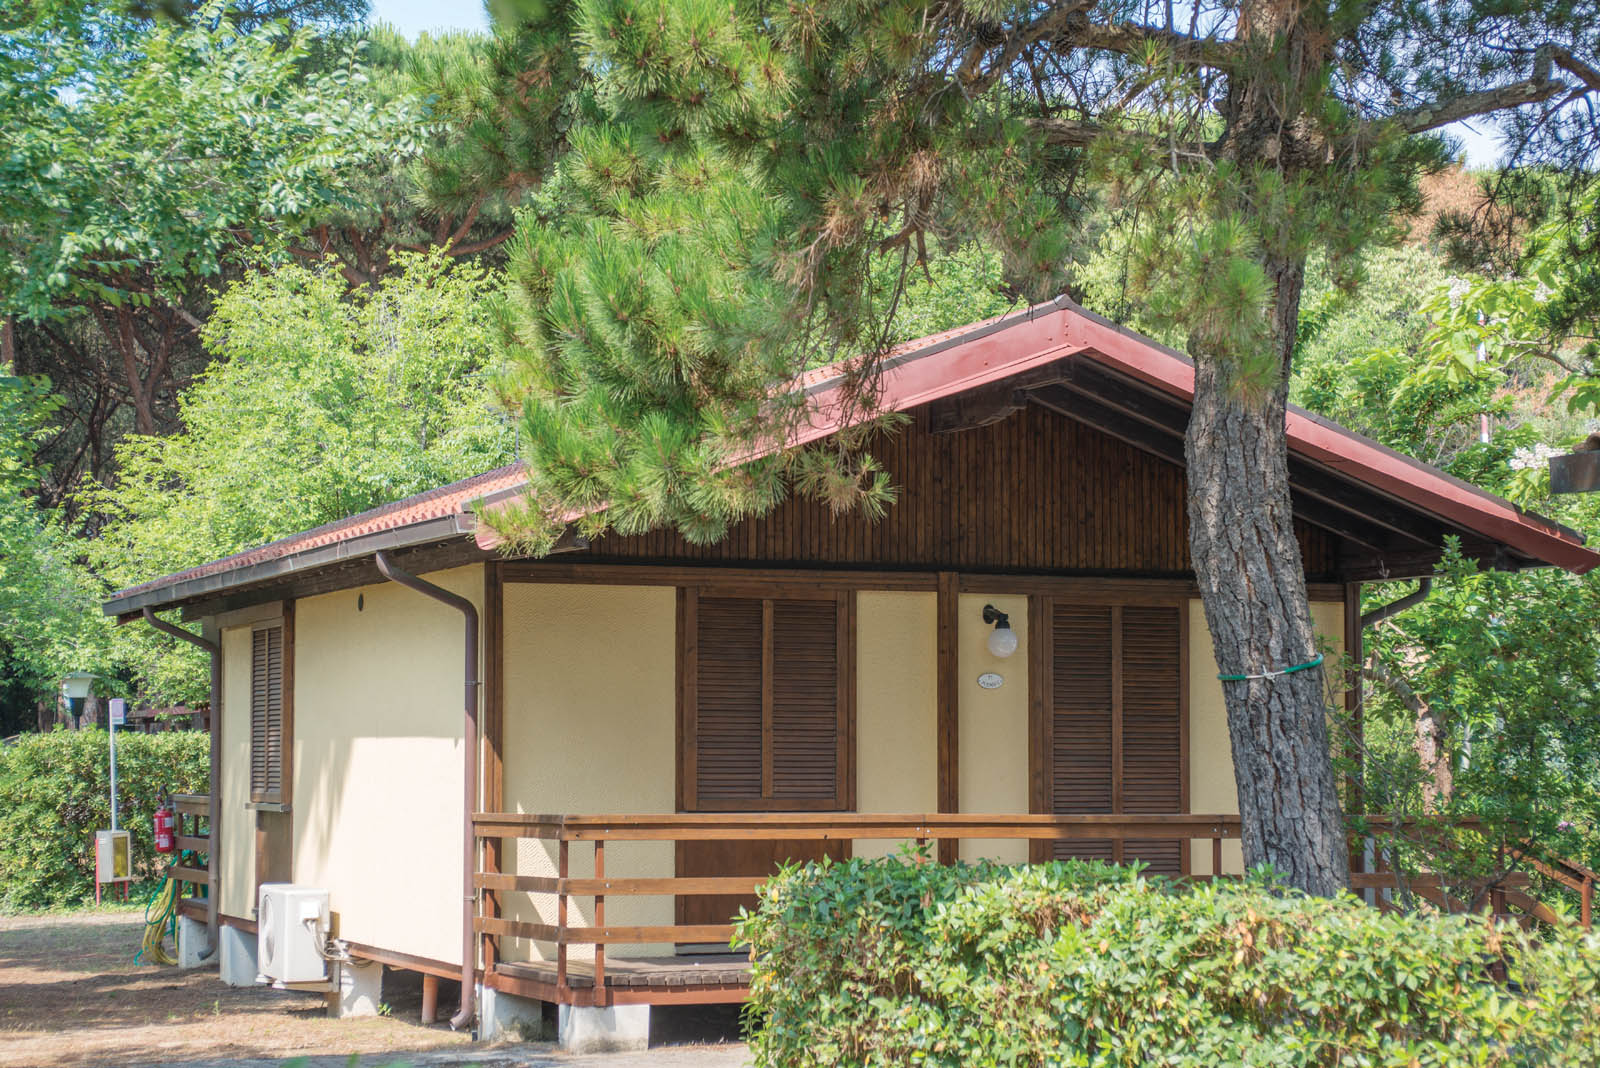 bungalow, camping tuscany